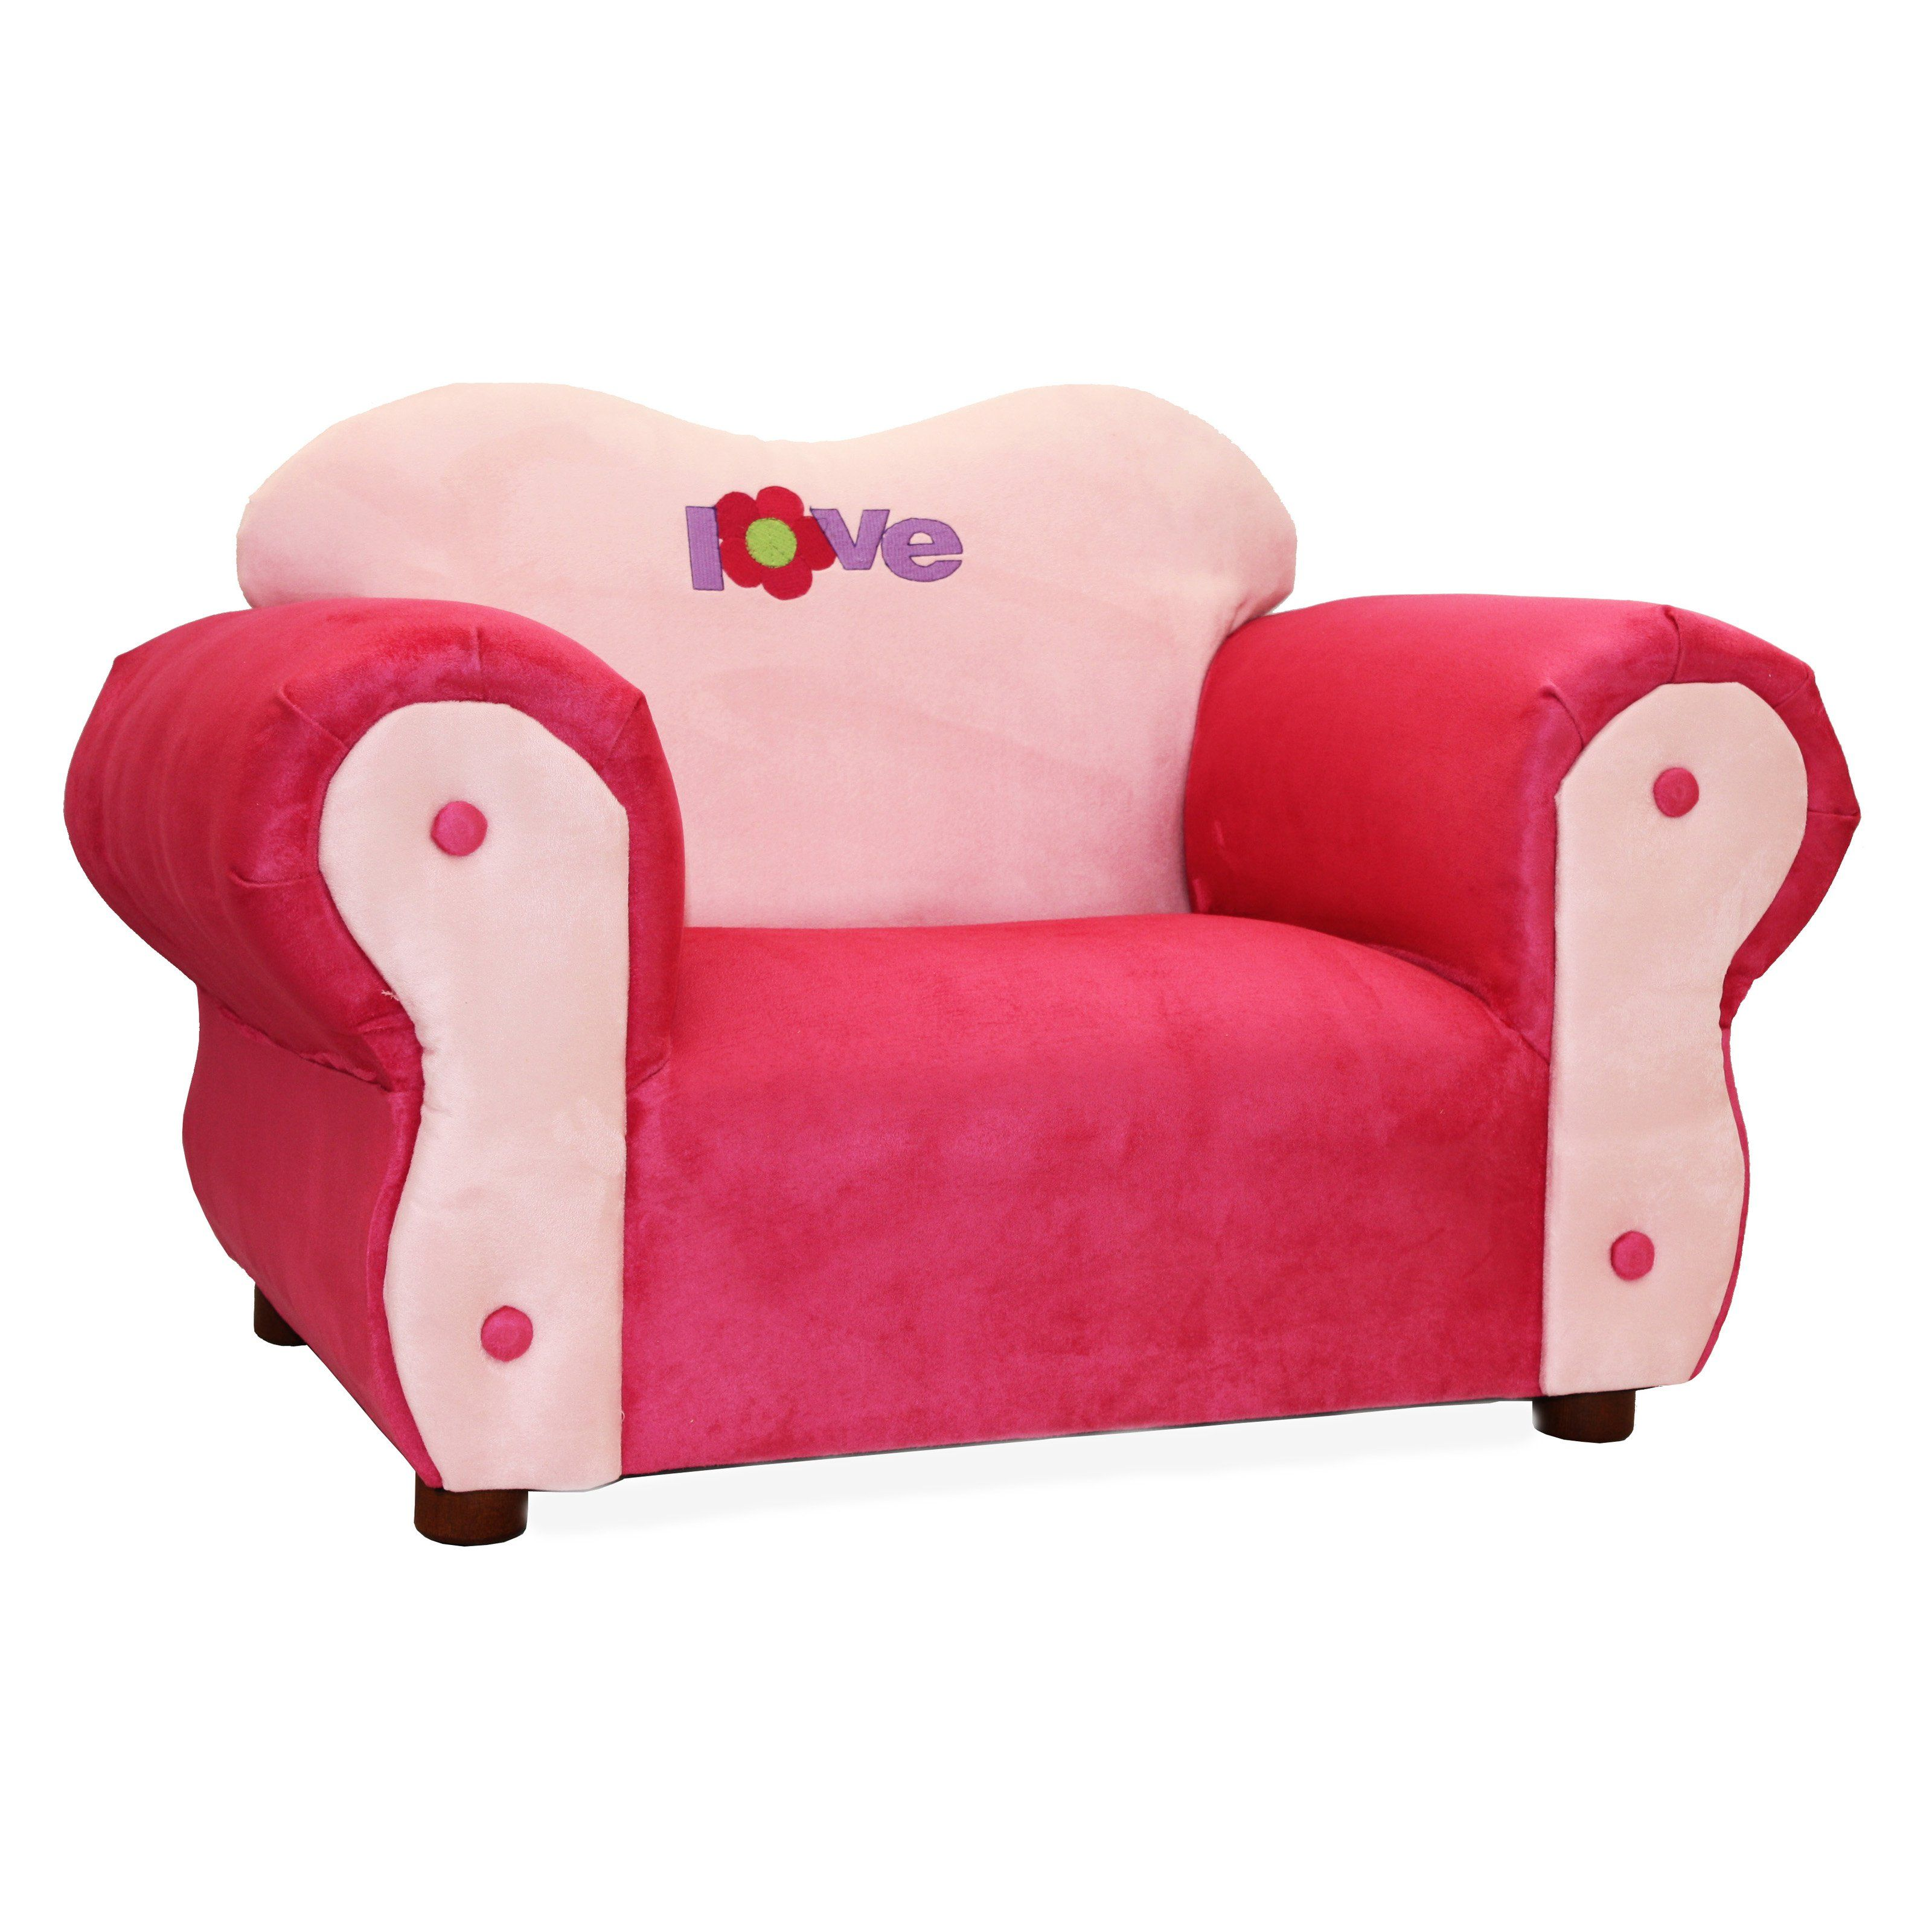 patrol products bedding en product ottomans fii a chair decoration kid inflatable decor chairs paw